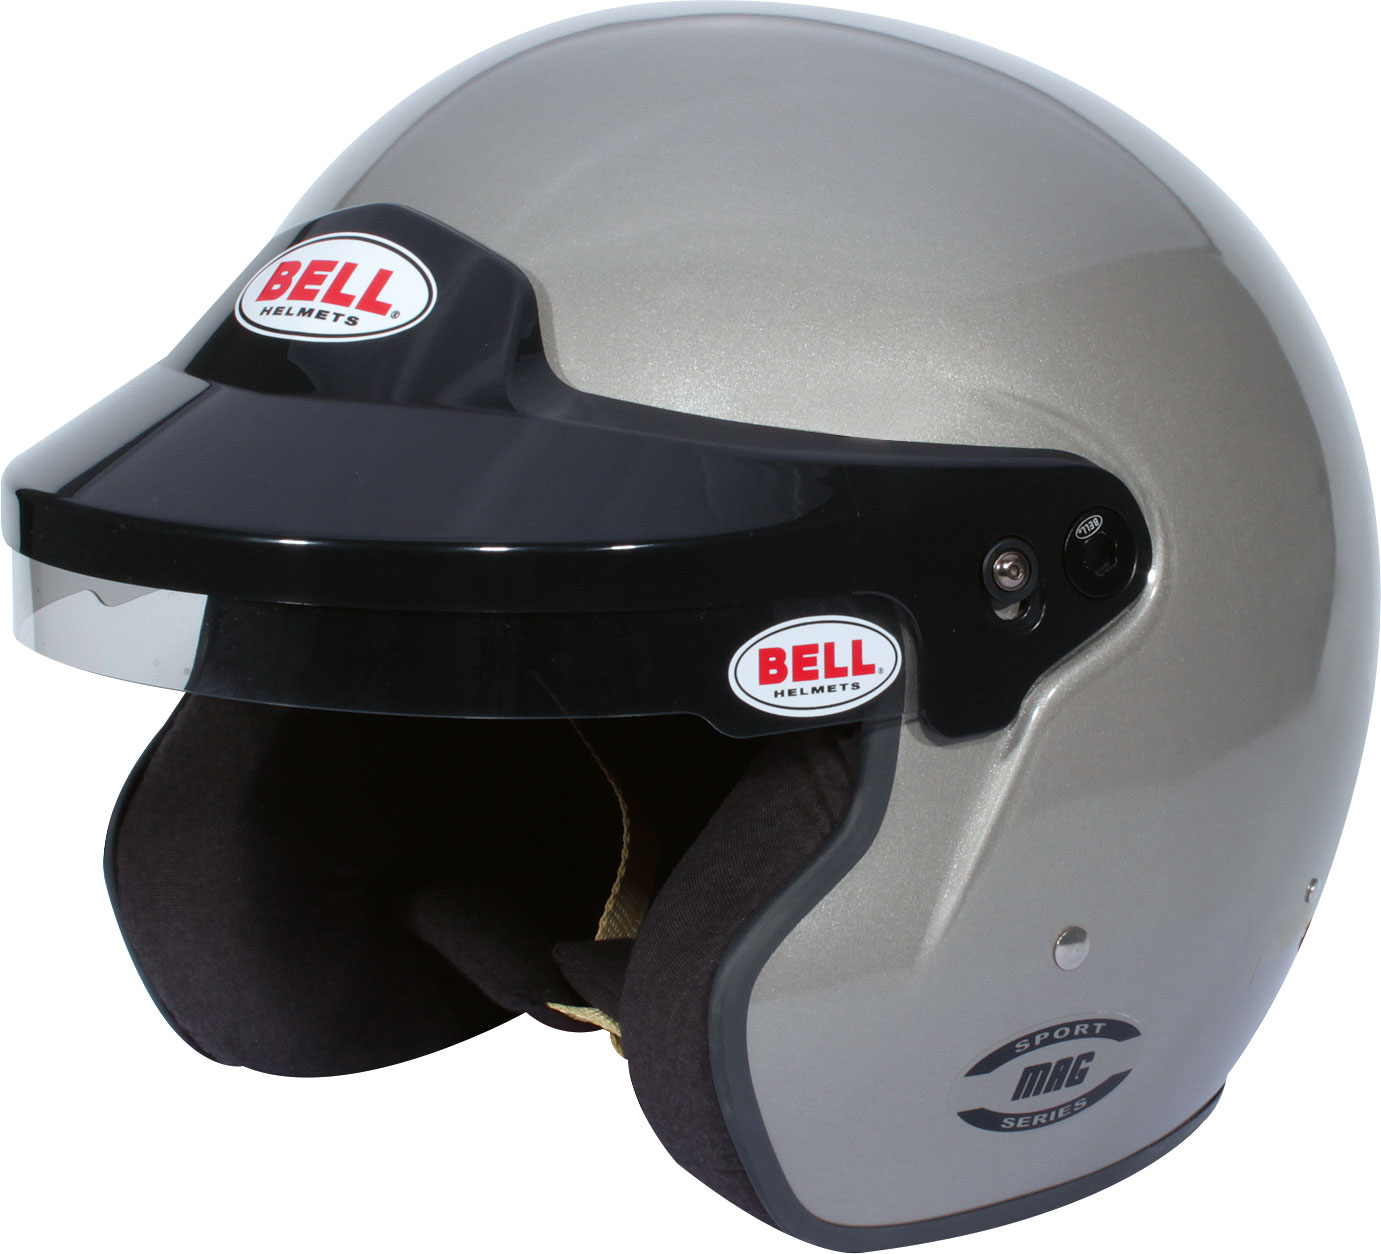 BELL Helm MAG